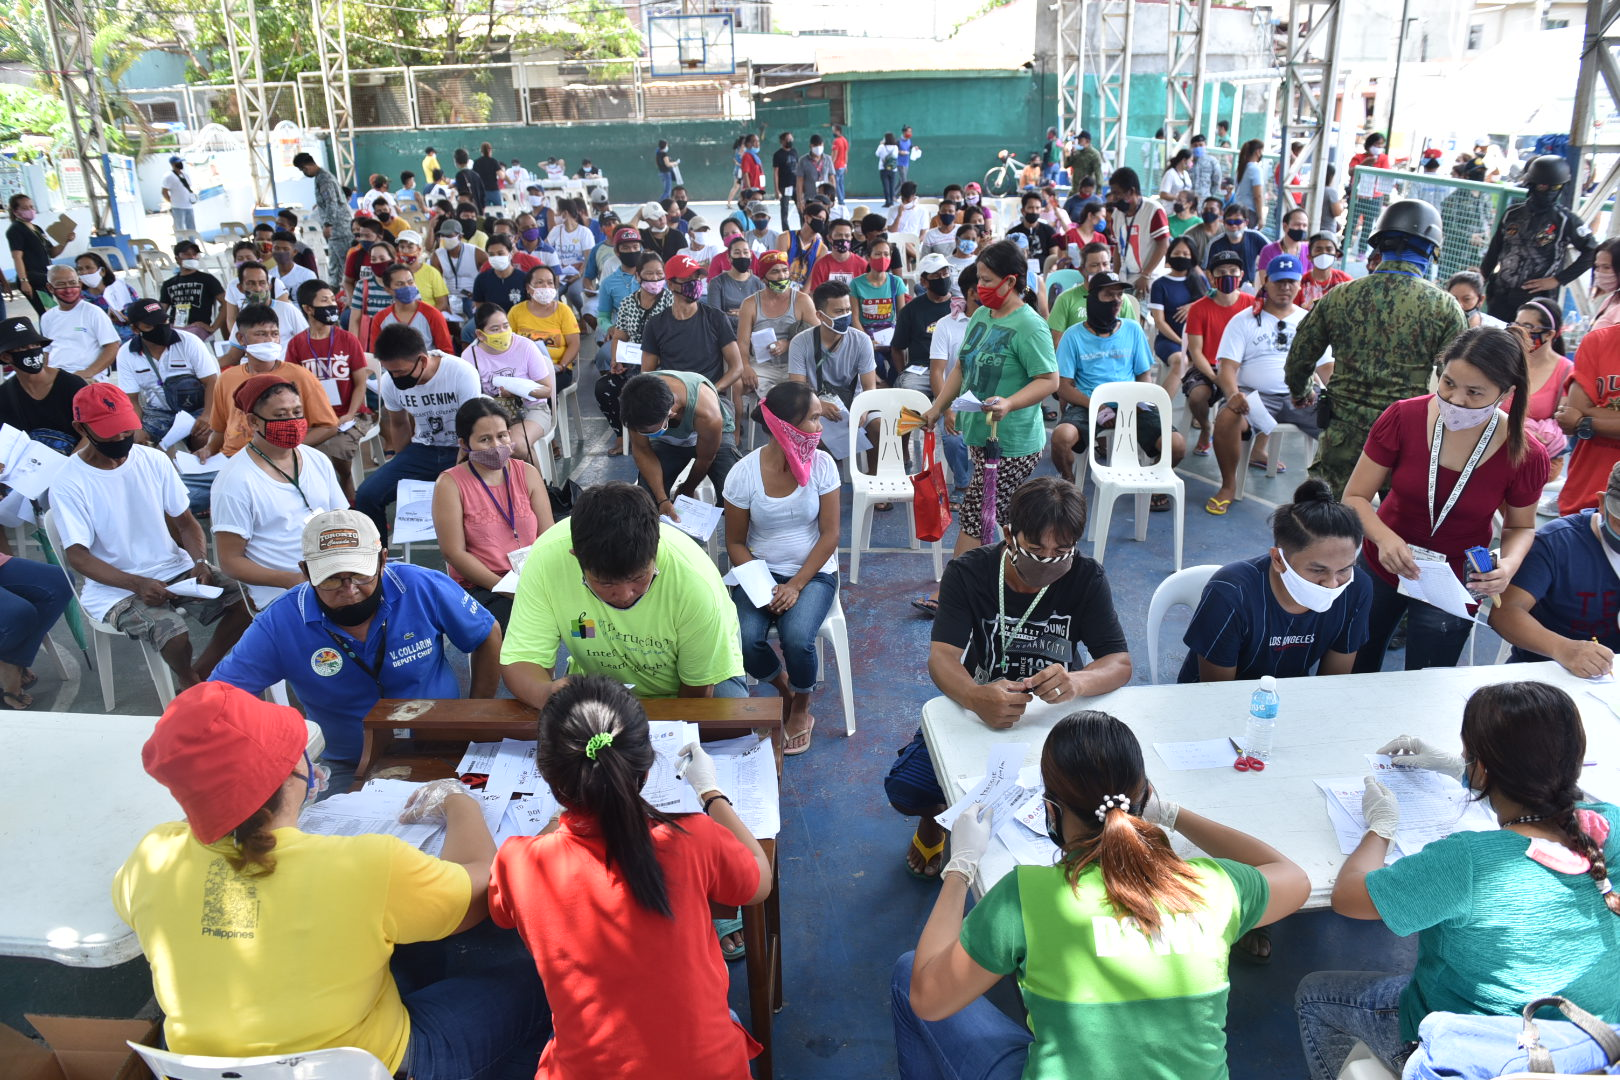 CAVITE. Residents of Barangay Pasong Camachile 1 in General Trias City crowd on Thursday, May 7, 2020 to receive their cash aid from the government's emergency subsidy program. Photo by Dennis Abrina